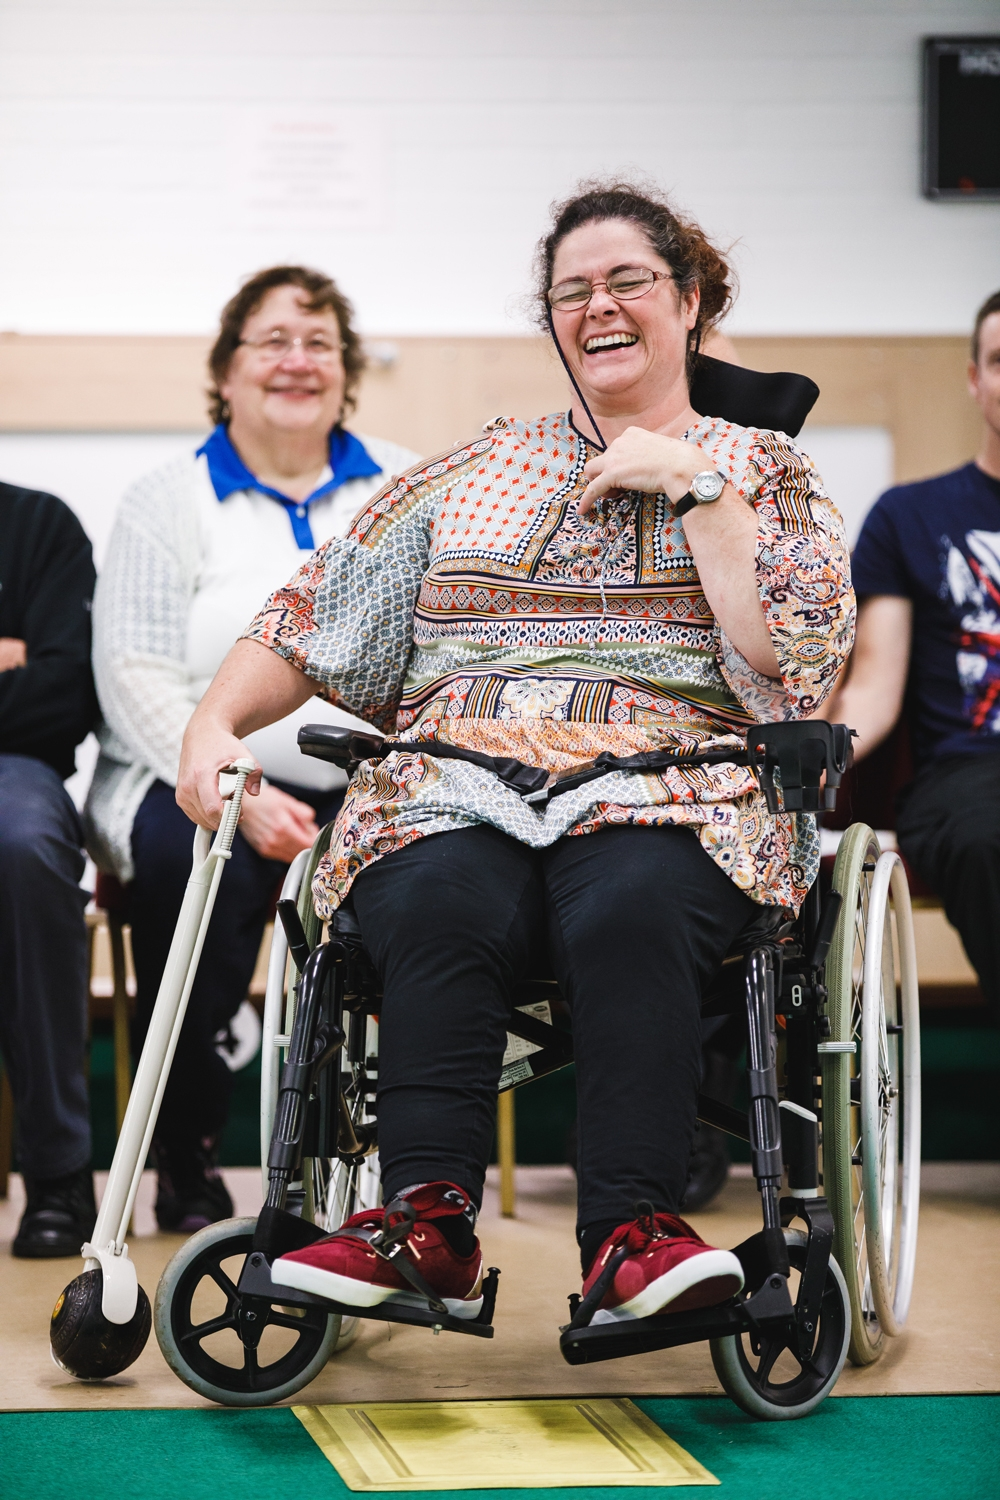 Our Mission - To provide and assist in the provision of facilities for the recreation, education, sport and other leisure time activities for disabled people primarily in Surrey and where necessary assist with their integration into Society. We meet every Tuesday from 6.30pm-9pm at The Leatherhead Leisure CentreLearn More